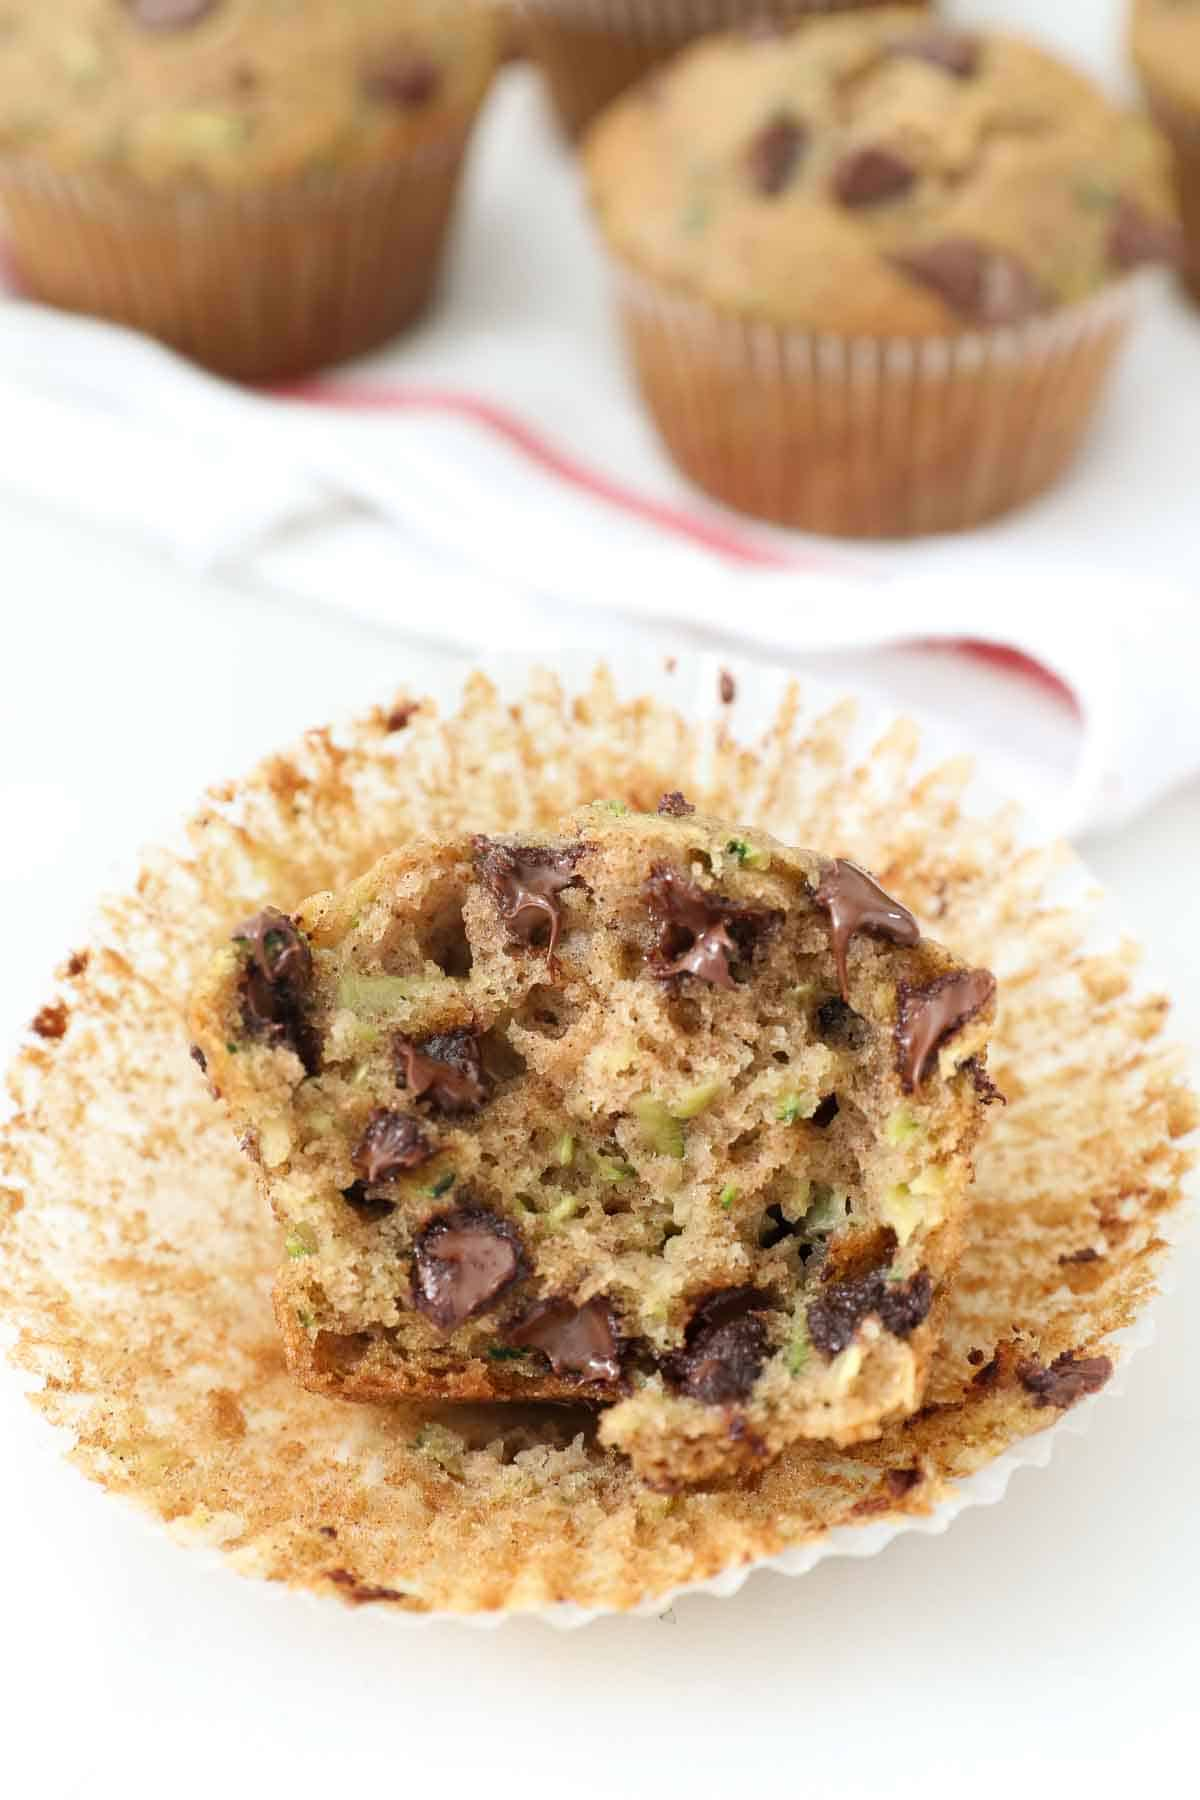 A half-eaten zucchini muffin with chocolate chips